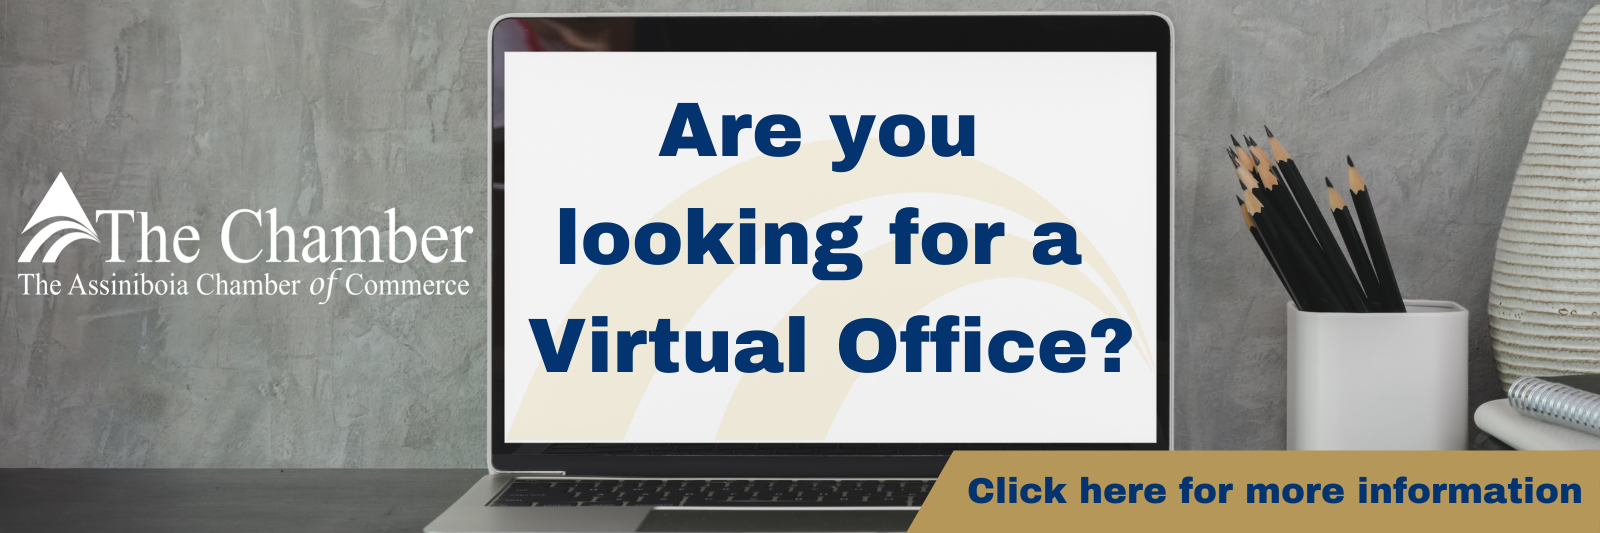 Virtual-Office-Ad.png